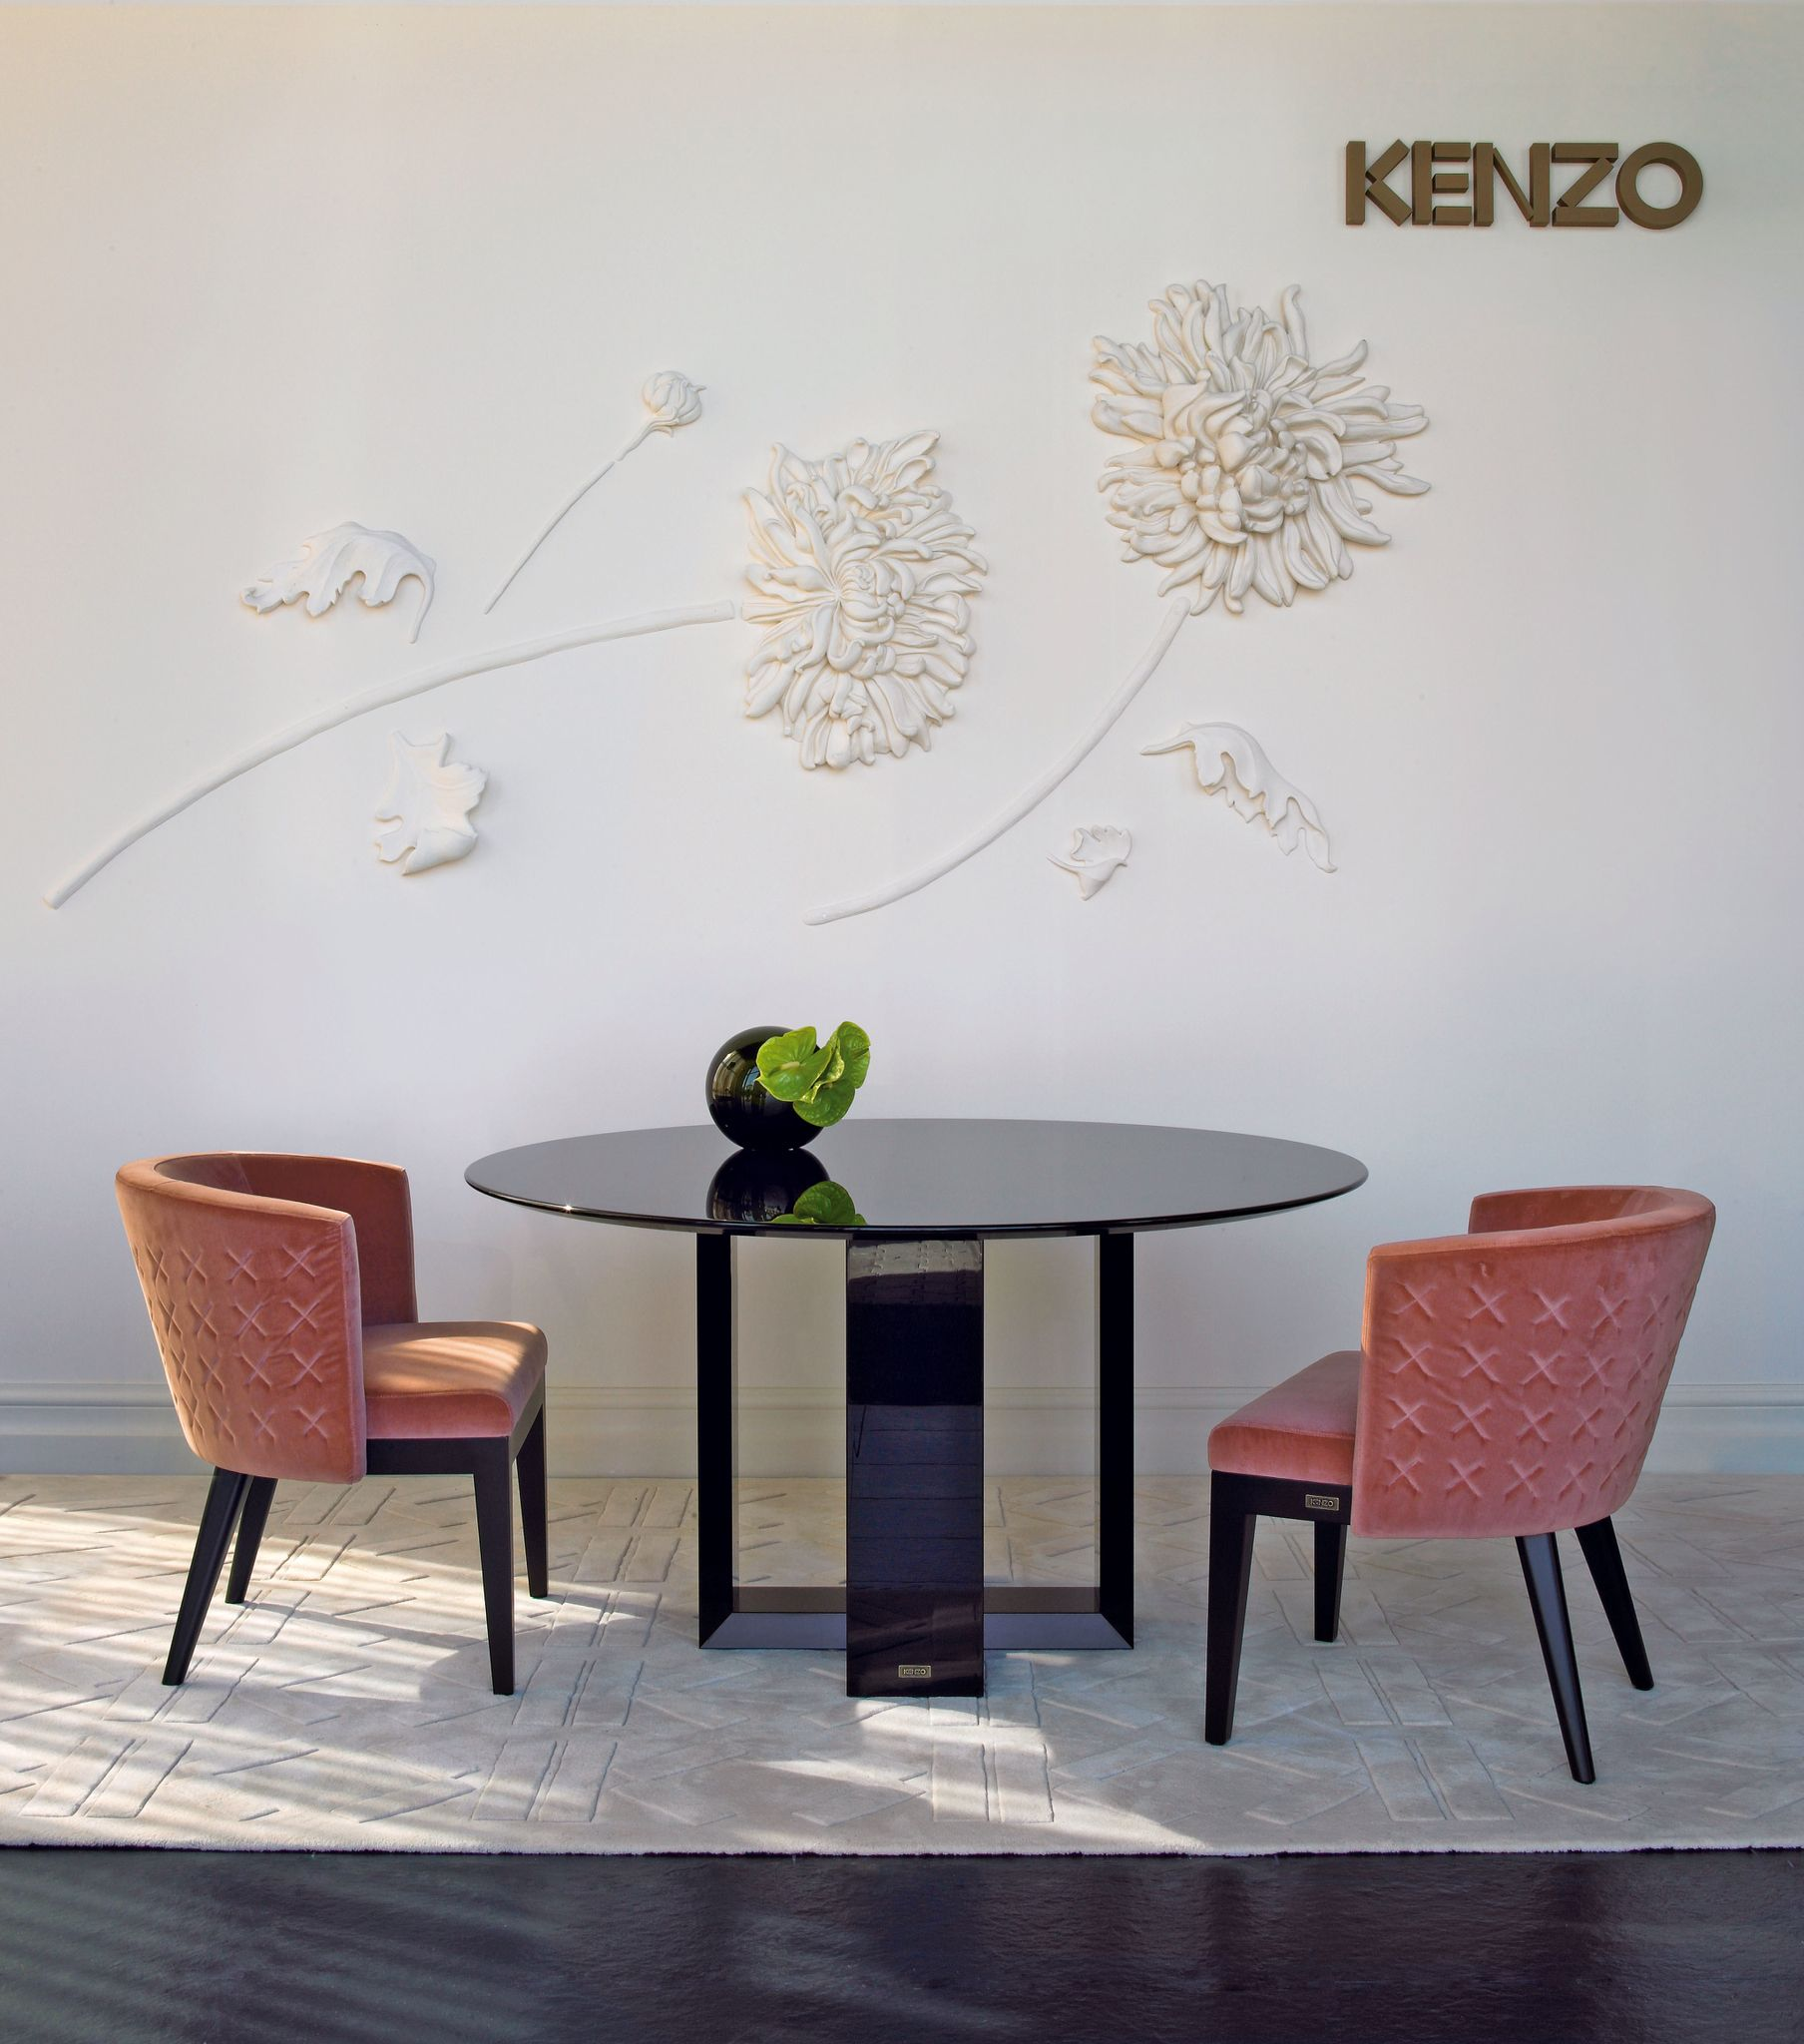 Kenzo Maison Home Decor Wall Design Dining Chairs